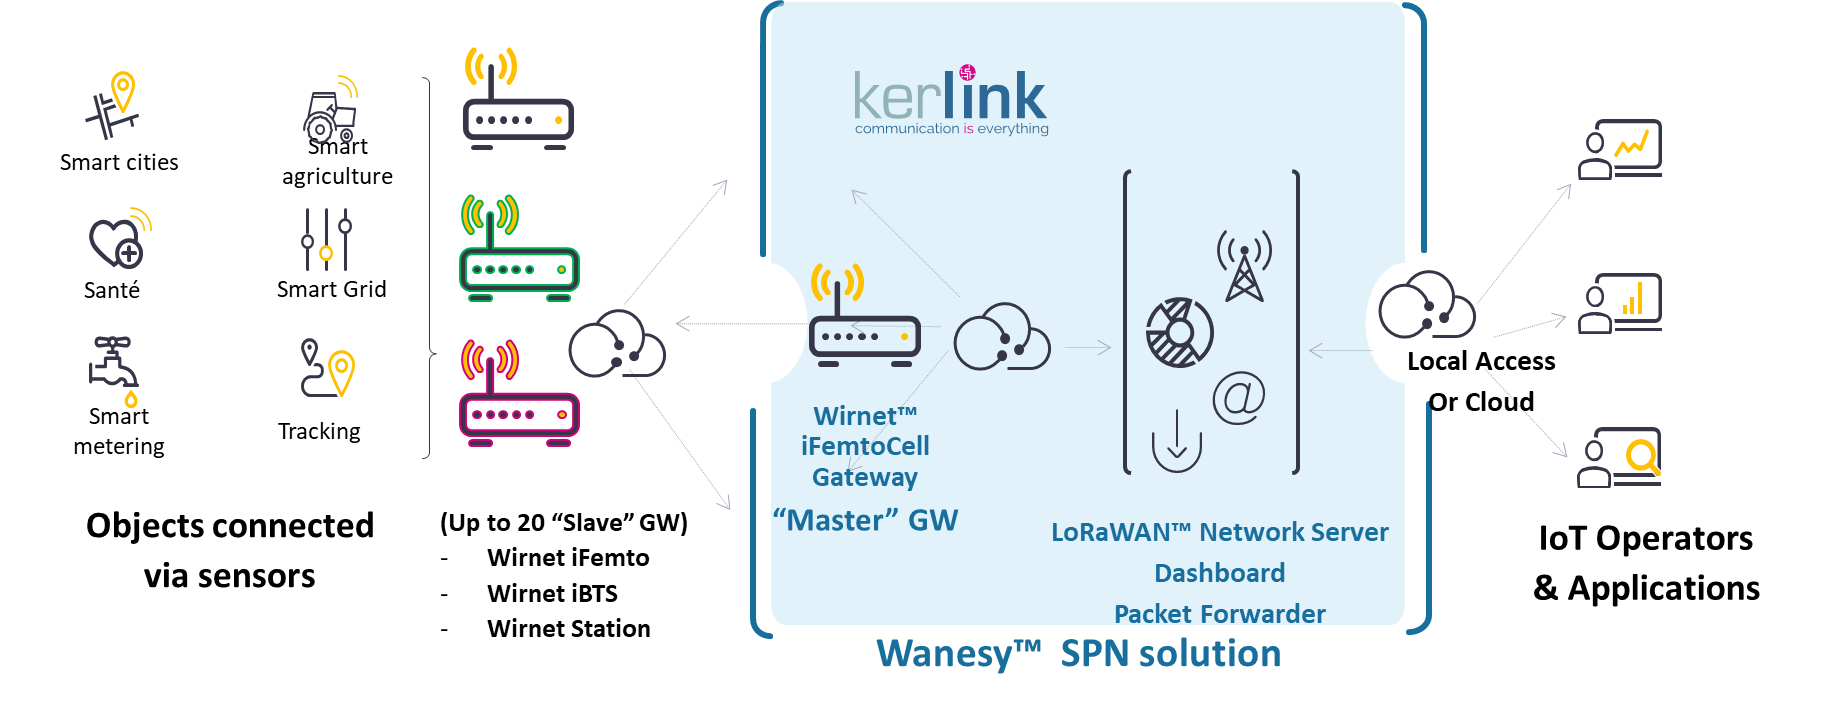 Kerlink_Wanesy_SPN_Solution